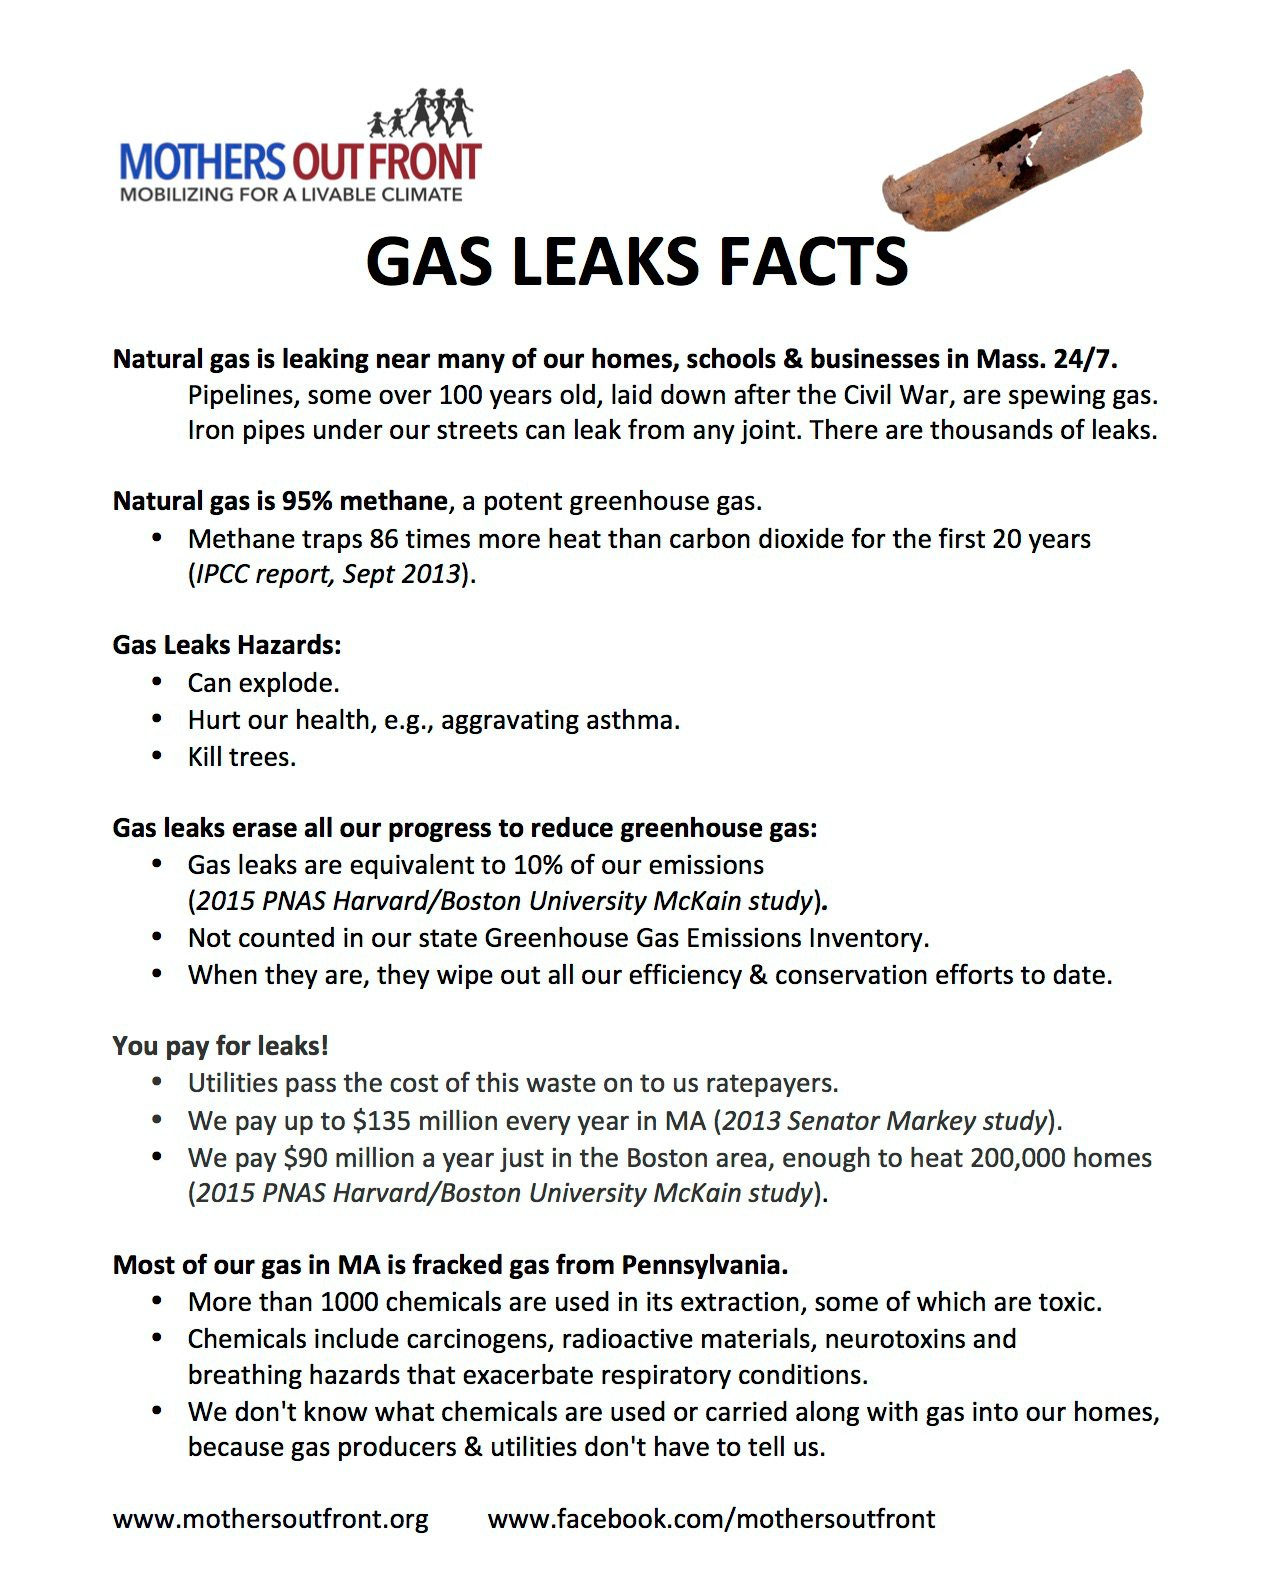 gas_leaks_fact_sheet_022717_1.jpg